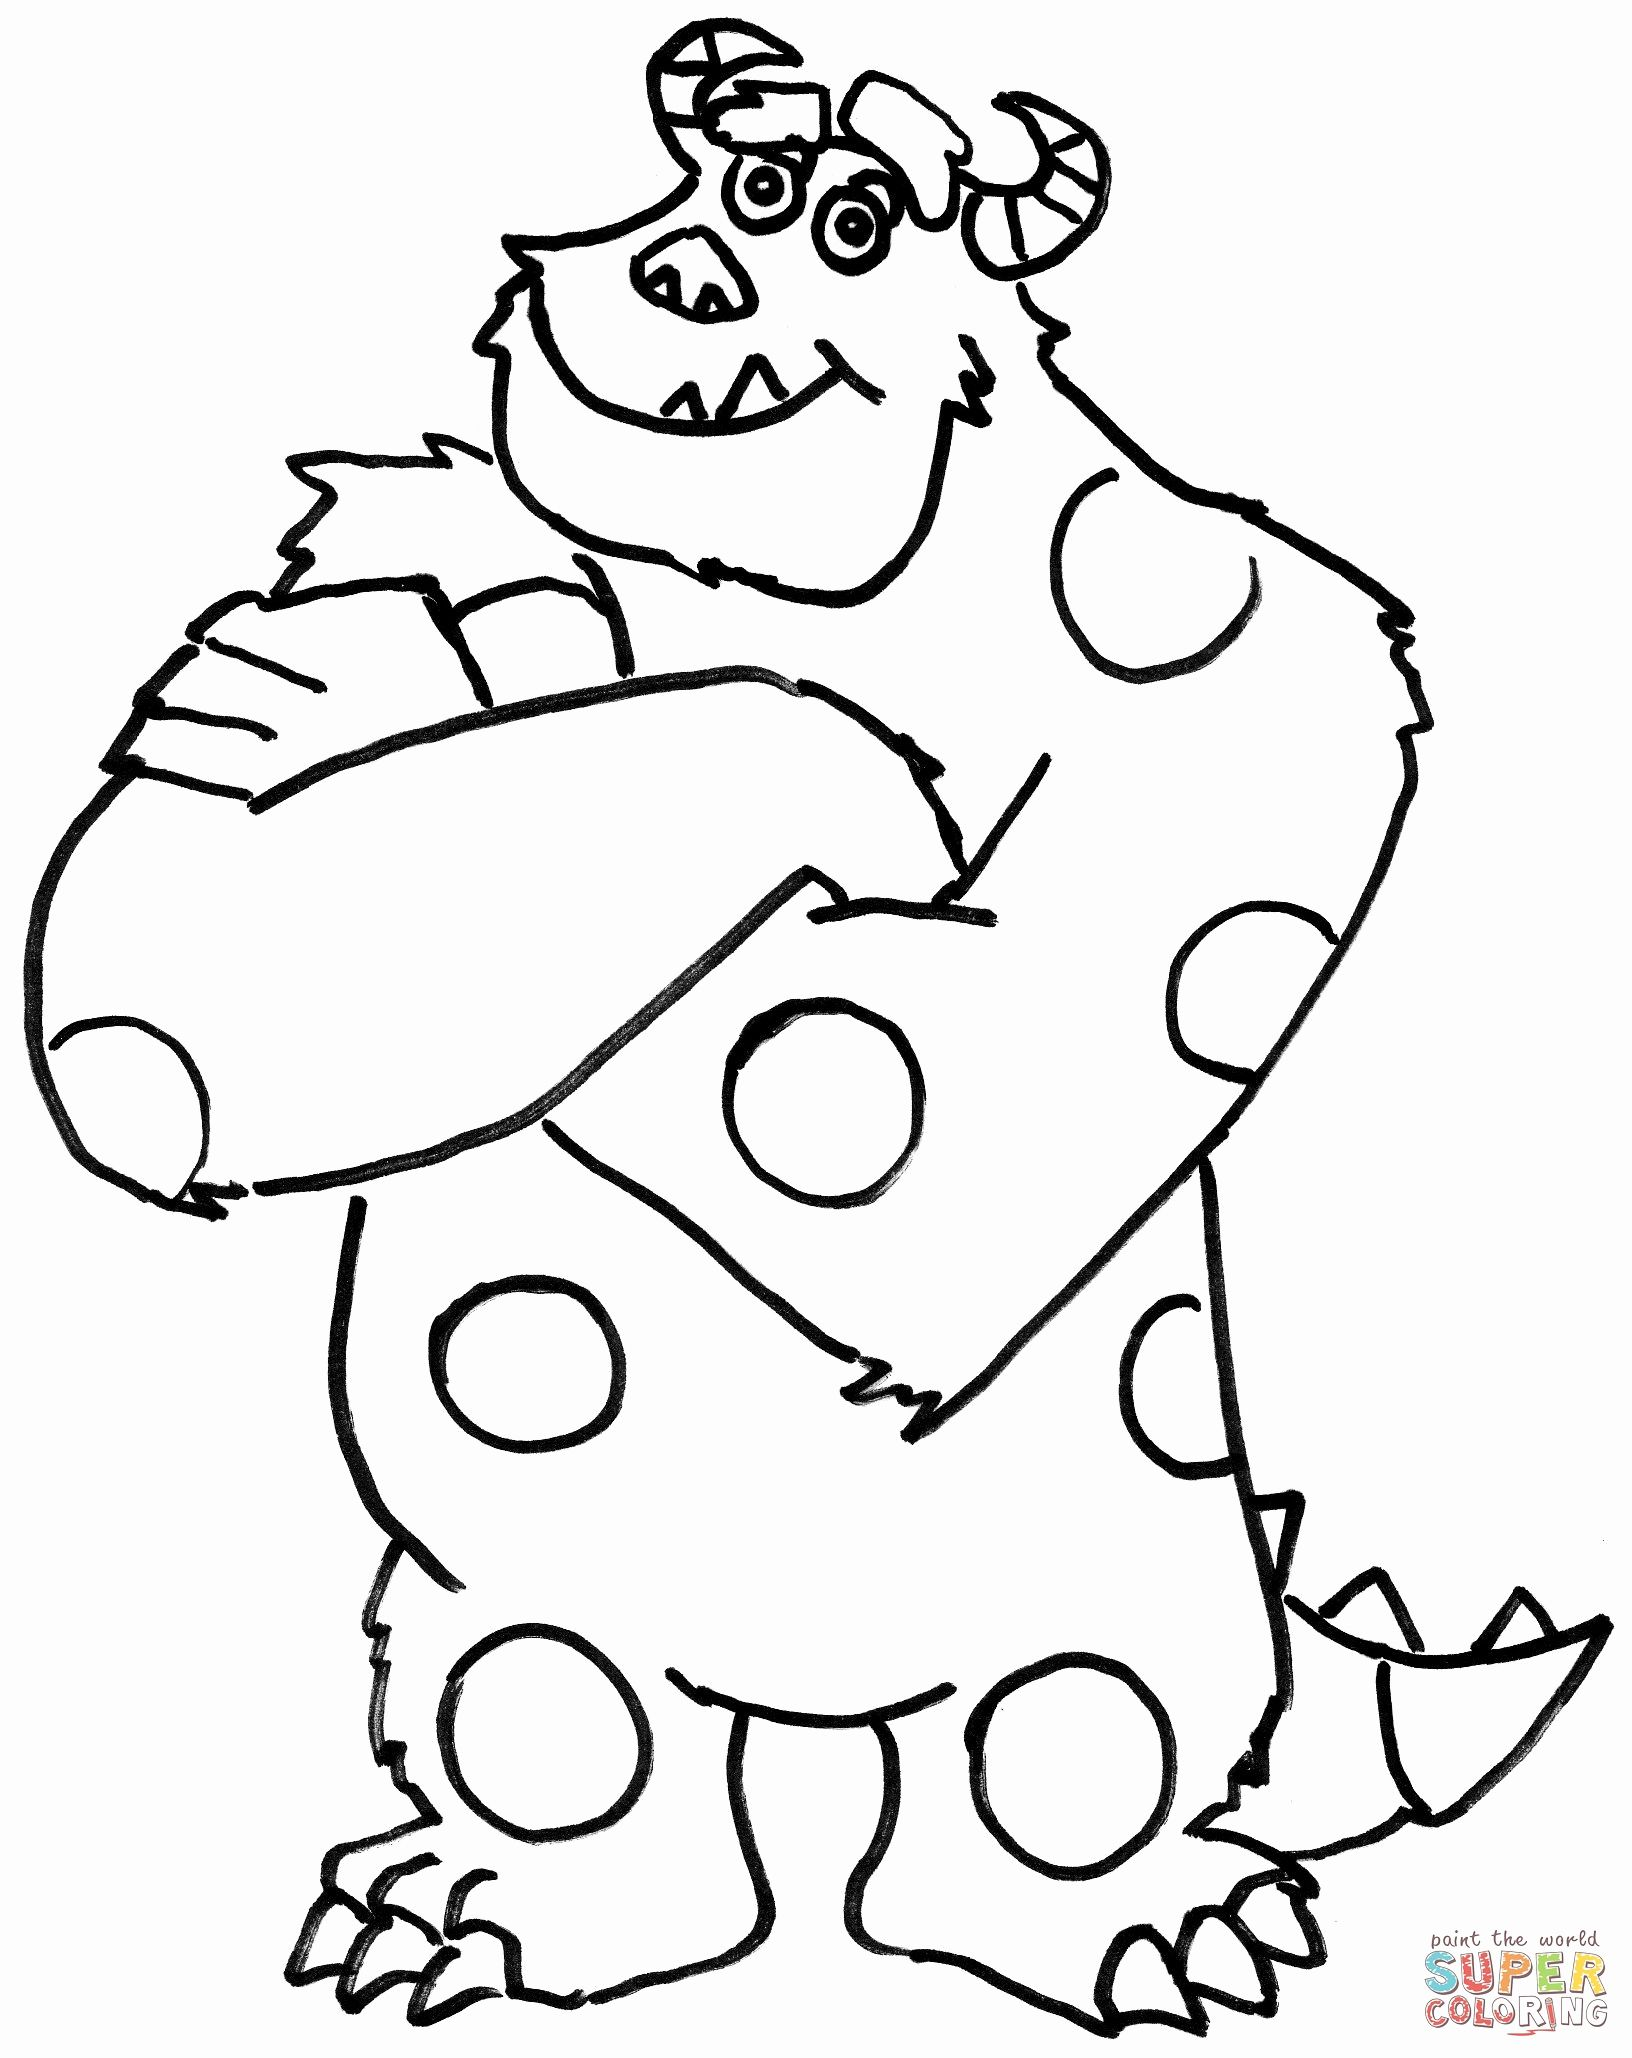 Kids Coloring Pages Super Monster Monster Coloring Pages Monster Truck Coloring Pages Halloween Coloring Pages